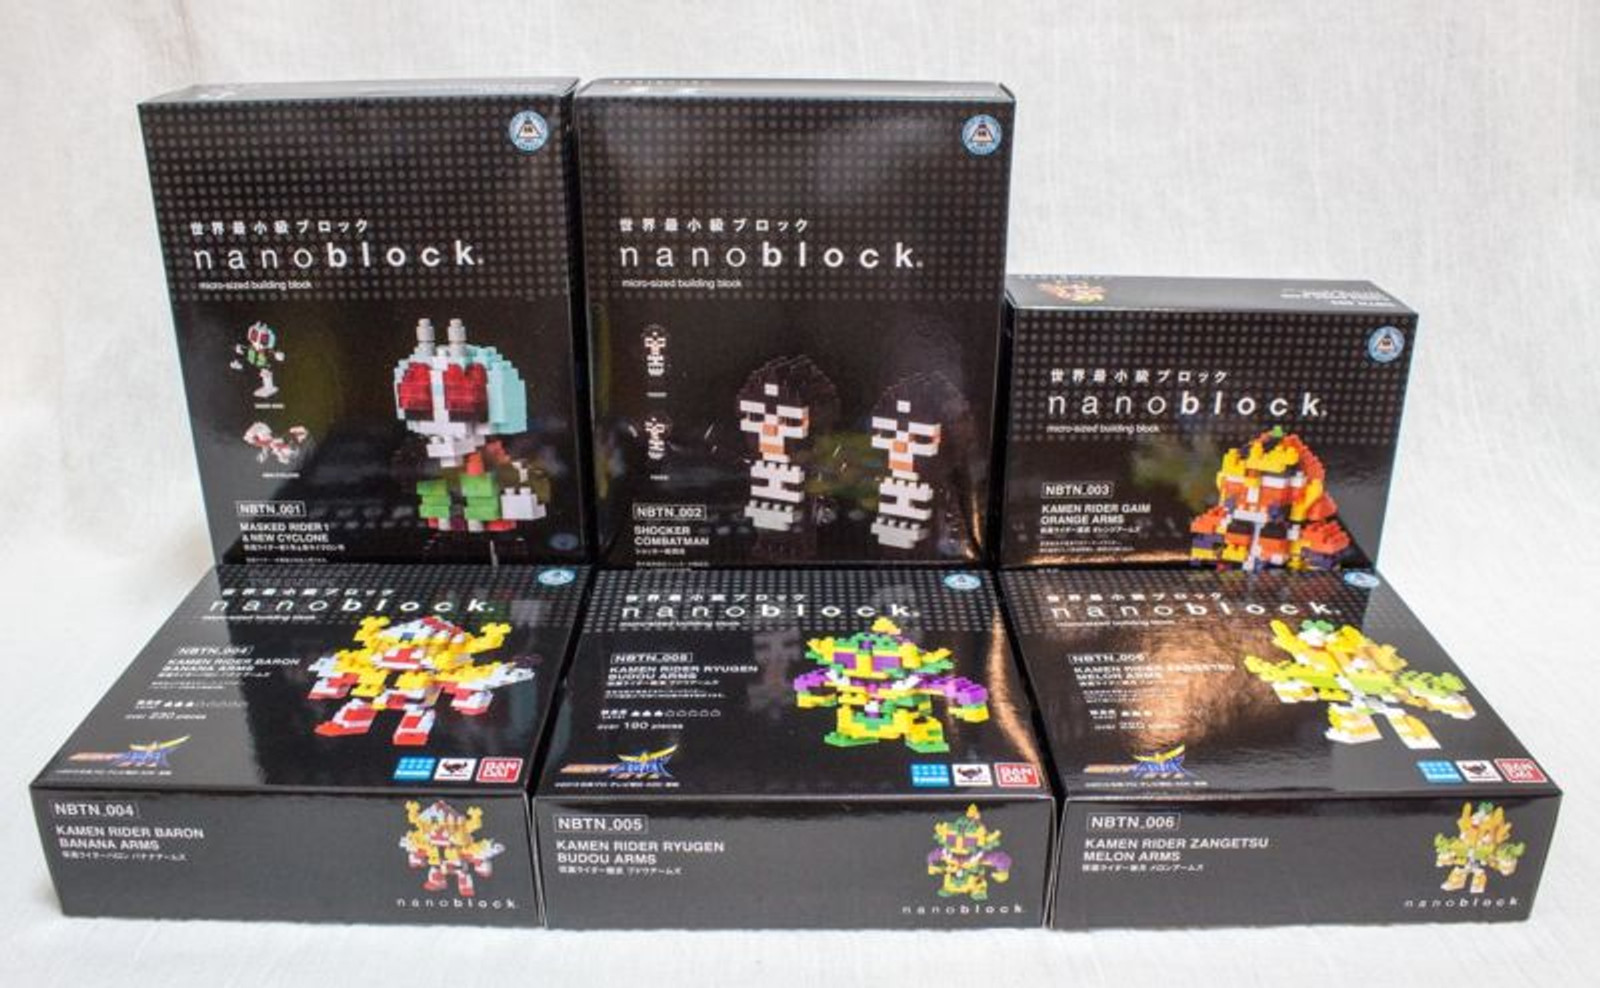 Set of 6 Kamen Rider Kawada Nanoblock Nano Block NBTN-001-6 JAPAN Figure